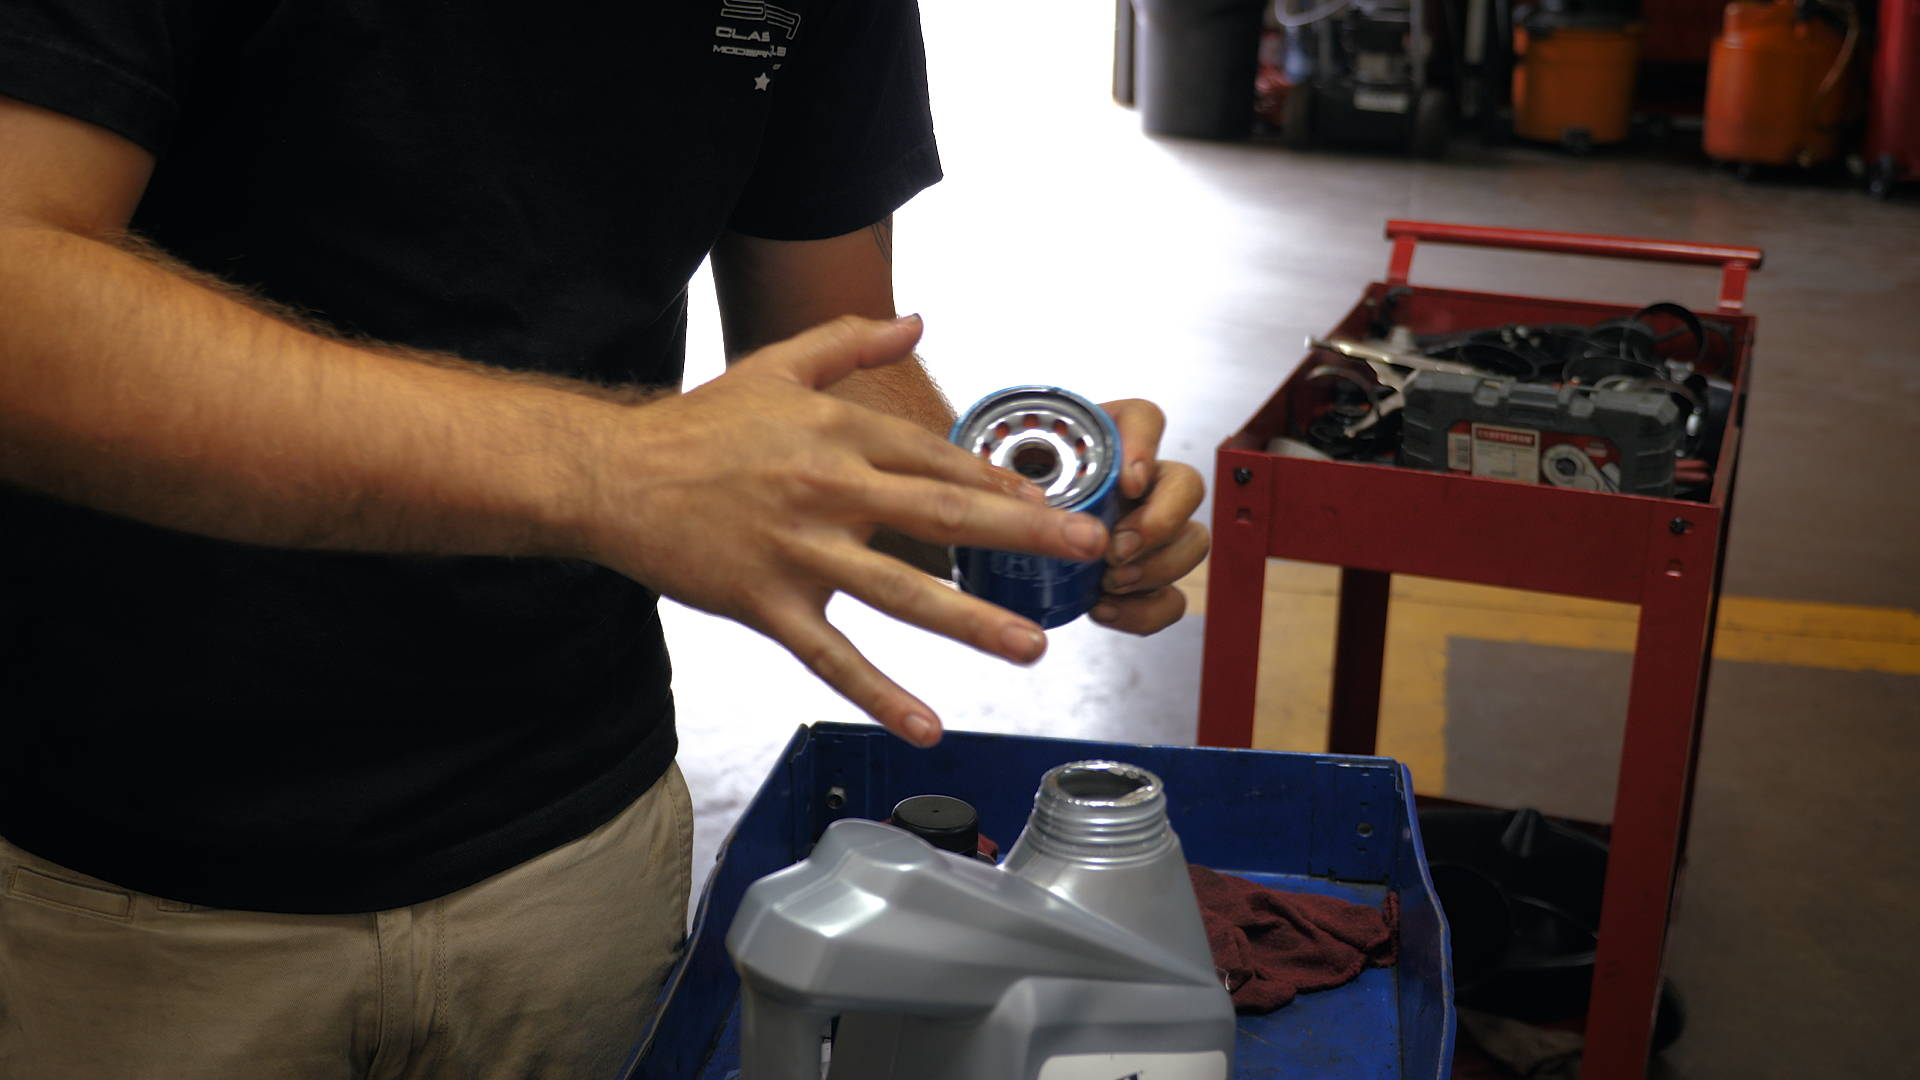 2017 Honda Civic Lying A Bead Of Oil To The New Filter Before Installing